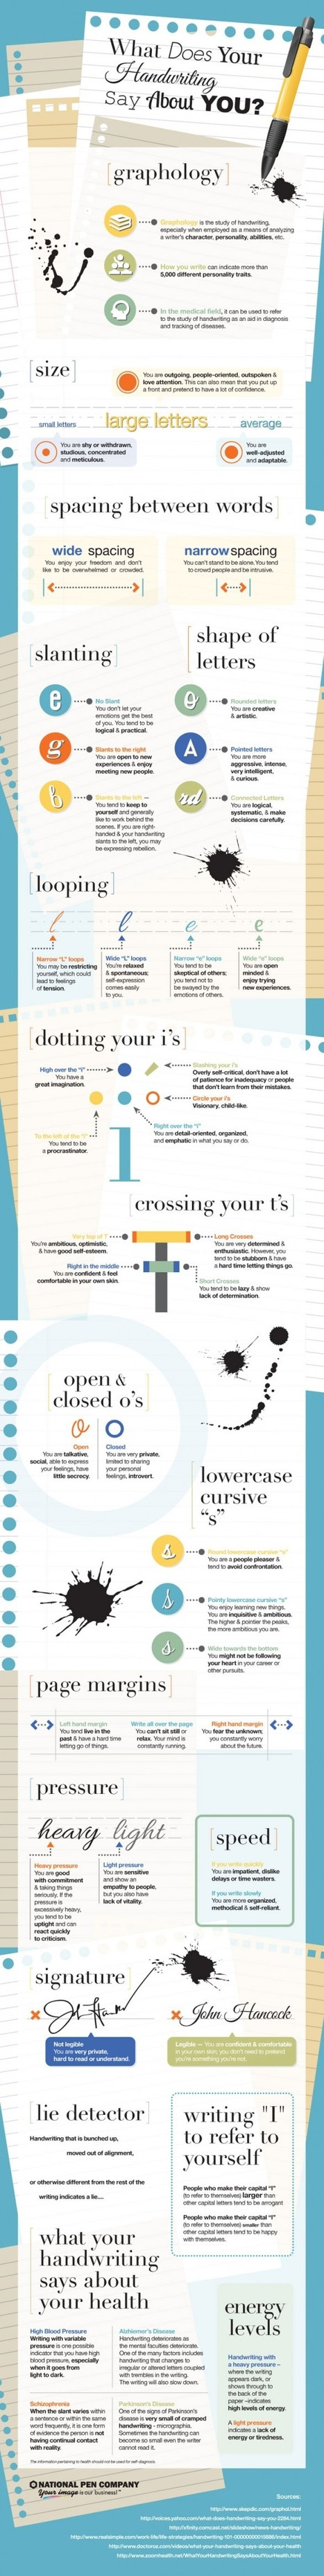 What Does Your Handwriting Say About You? [INFOGRAPHIC] | Dana Translation | Scoop.it